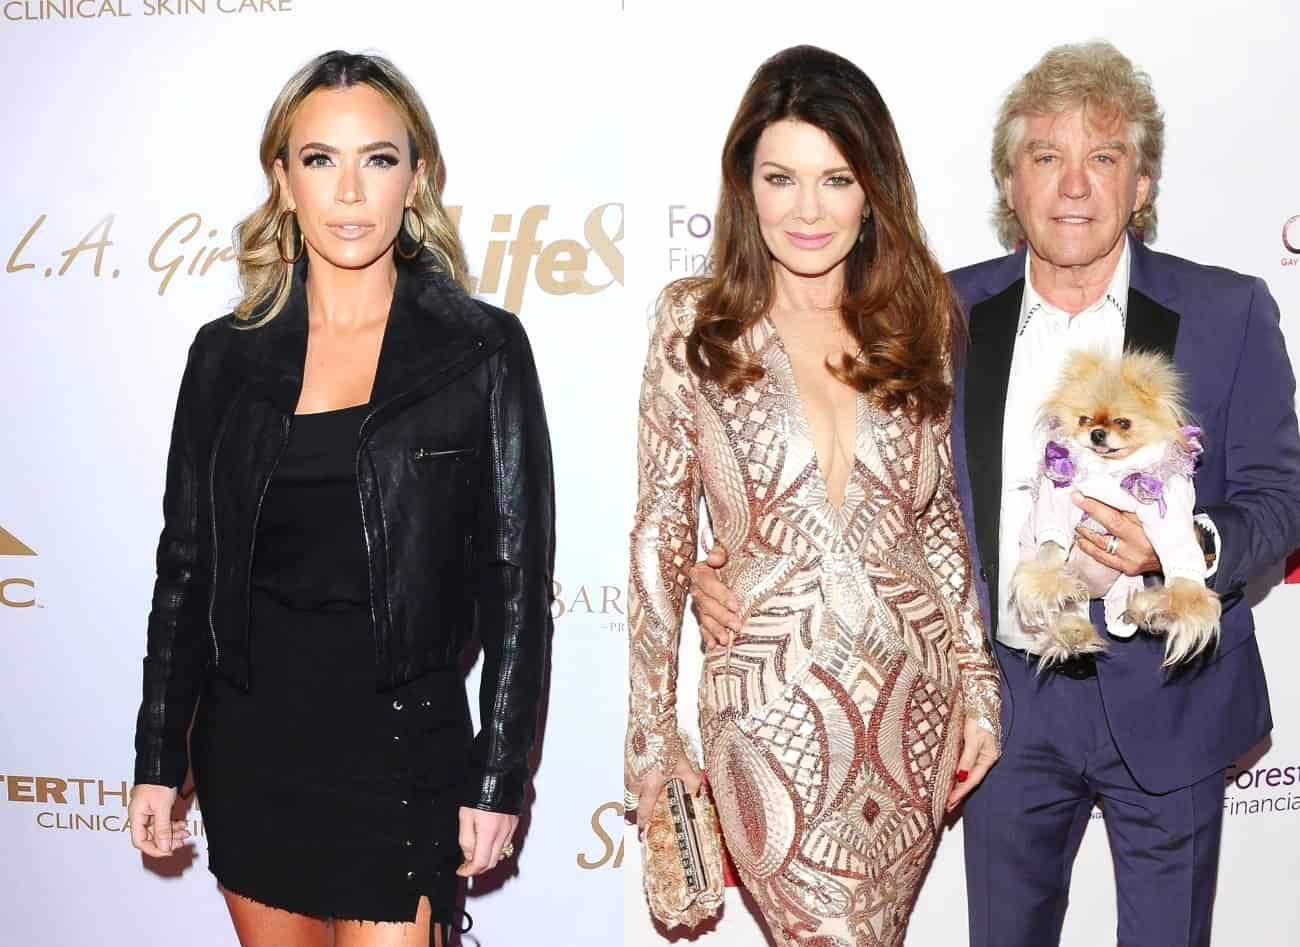 RHOBH's Teddi Mellencamp Implies Lisa Vanderpump Doesn't Truly Care About Dogs, Calls Out Ken Todd For His Aggressive Behavior Towards Kyle Richards